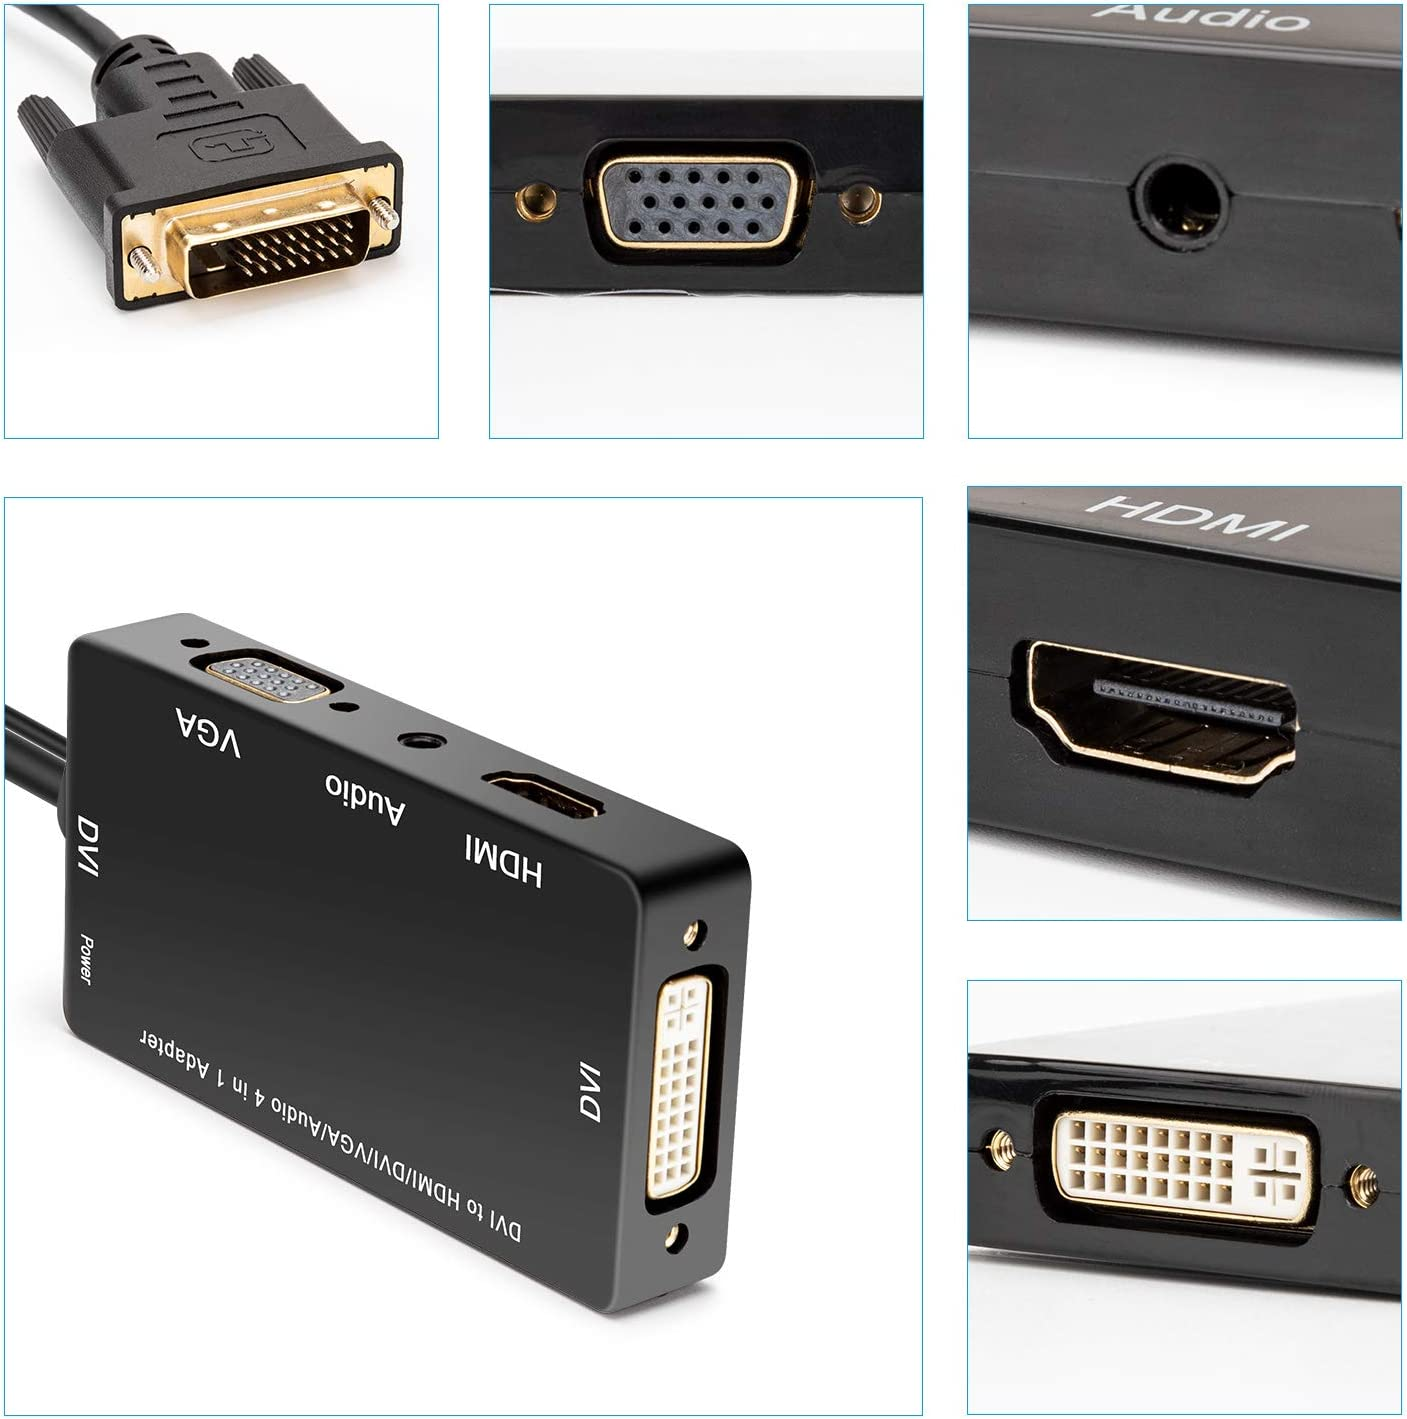 CABLEDECONN 4-in-1 DVI to HDMI VGA DVI Adapter Multi-Function Active DVI 24+1 Cable with Micro USB Audio 3.5mm Jack